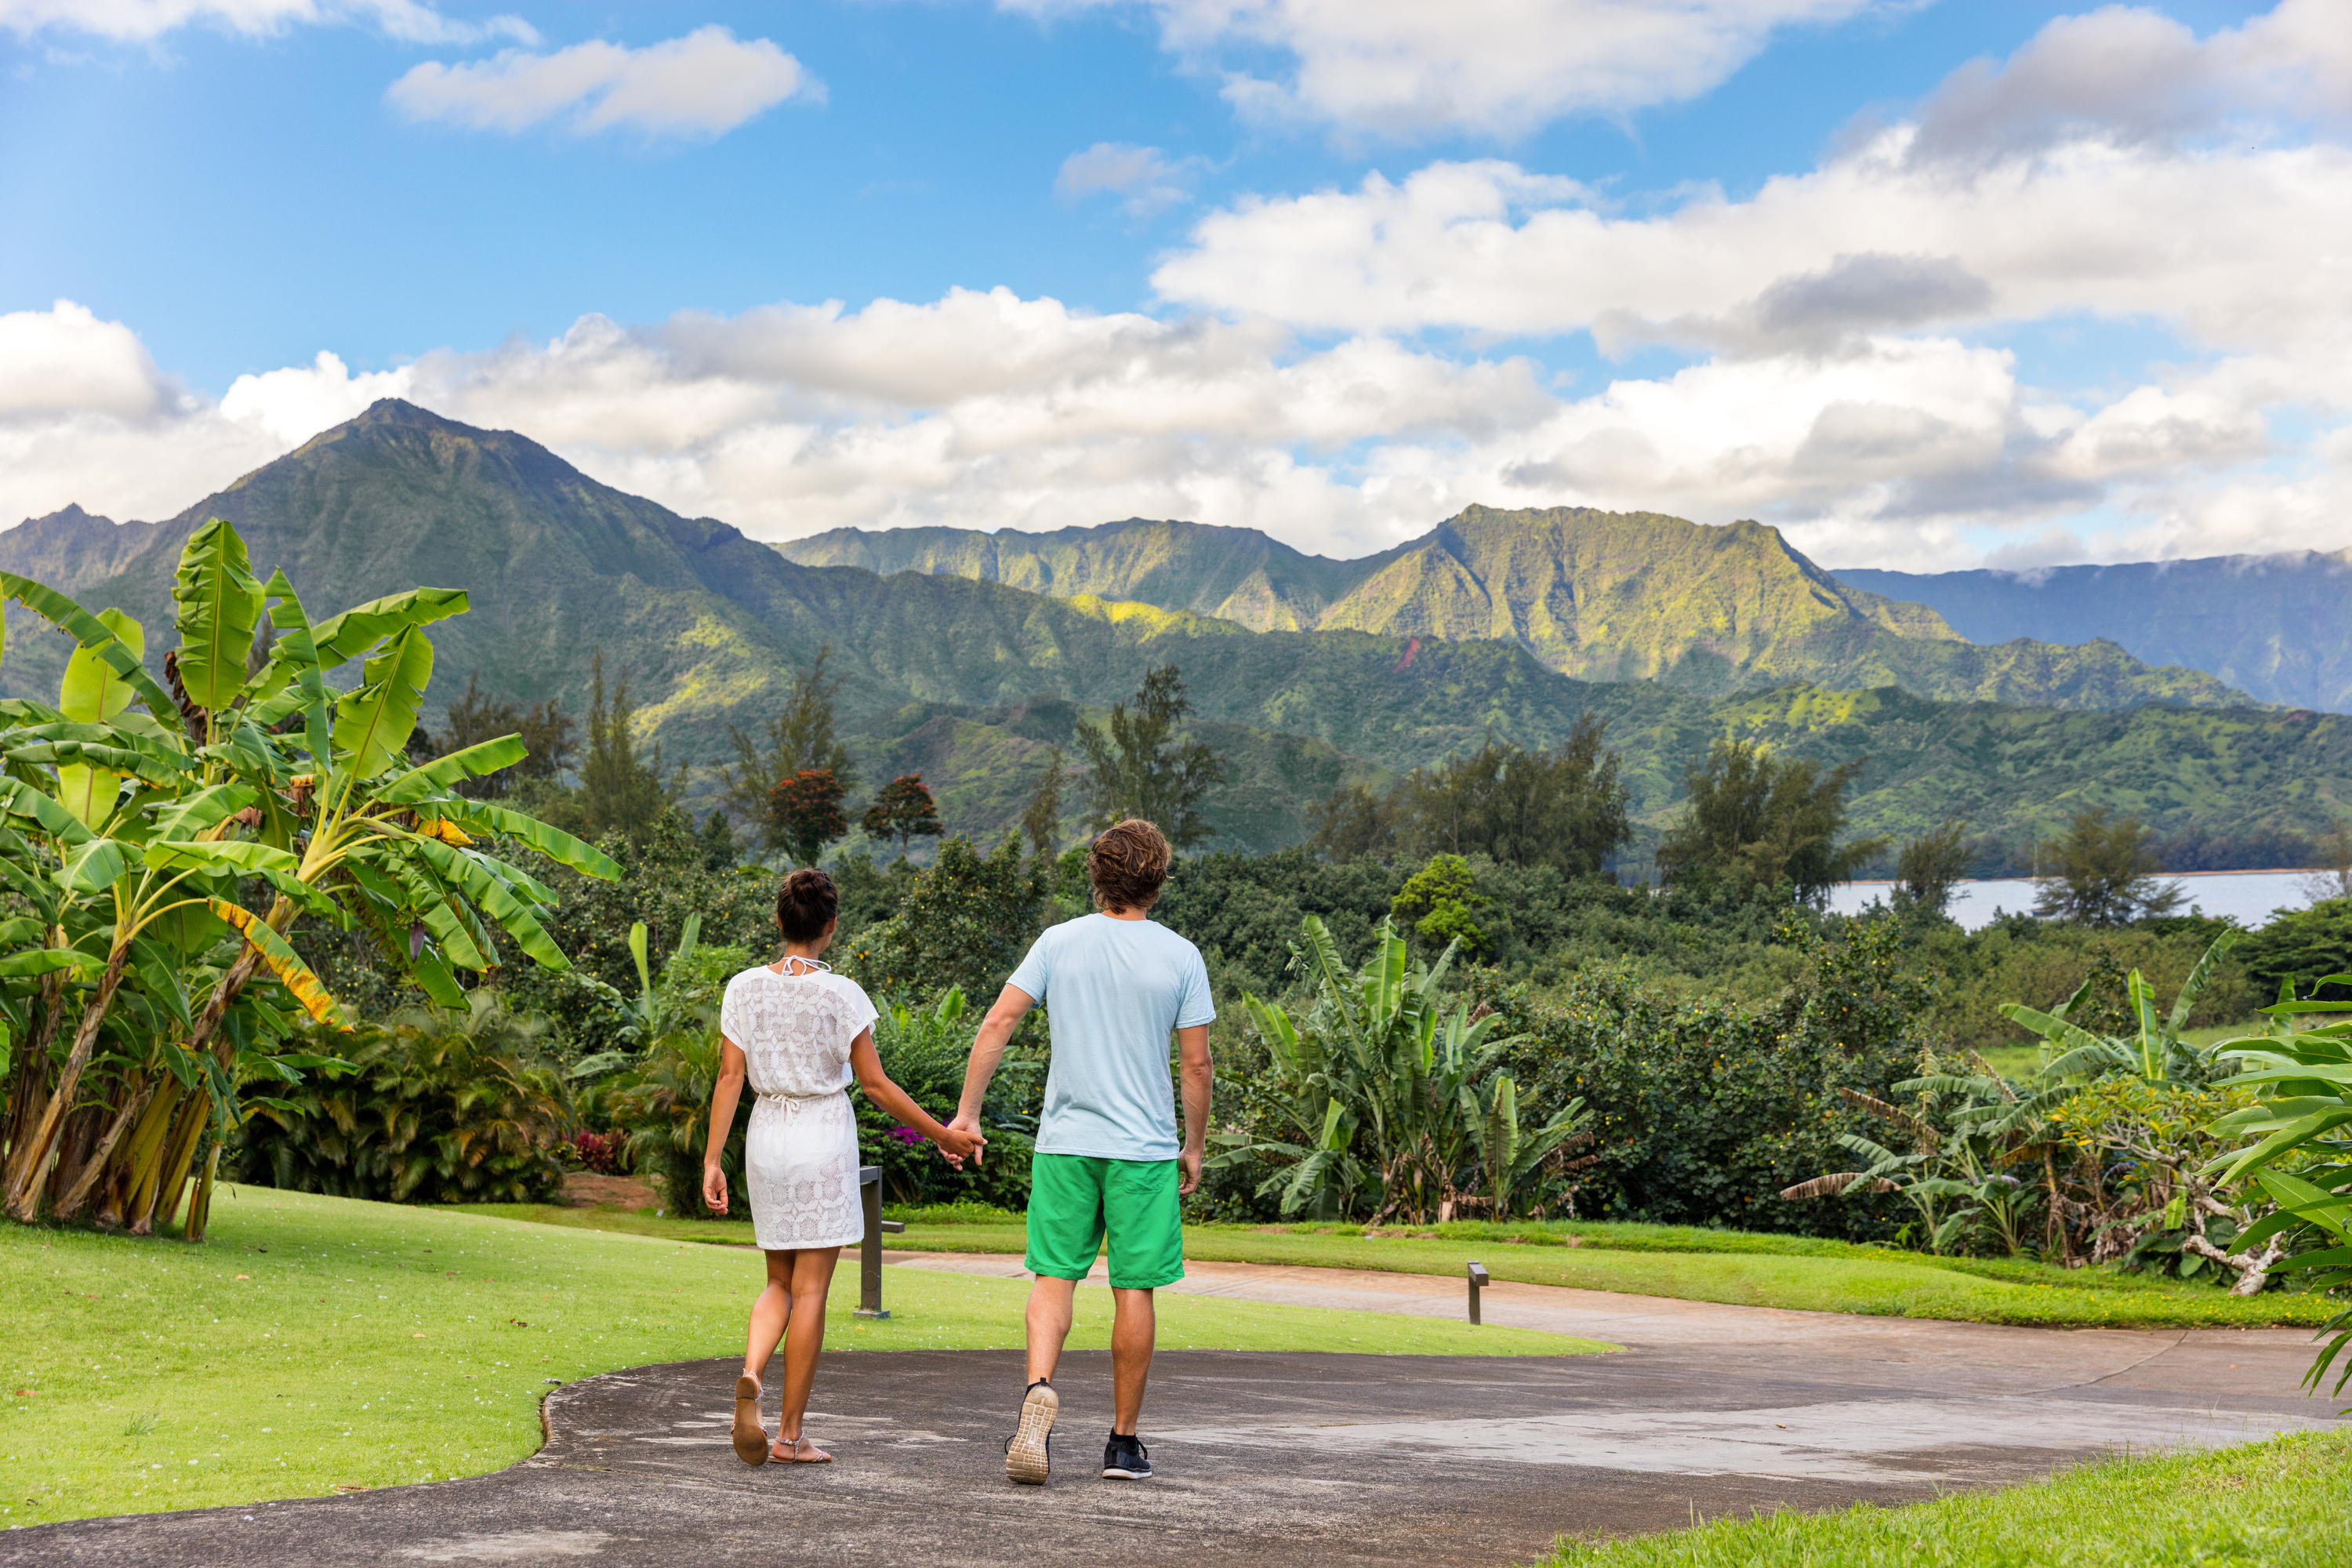 Kauai is a magical island. When you do these secret things to do in Kauai, you will fall even more in love with it! Give them a try!